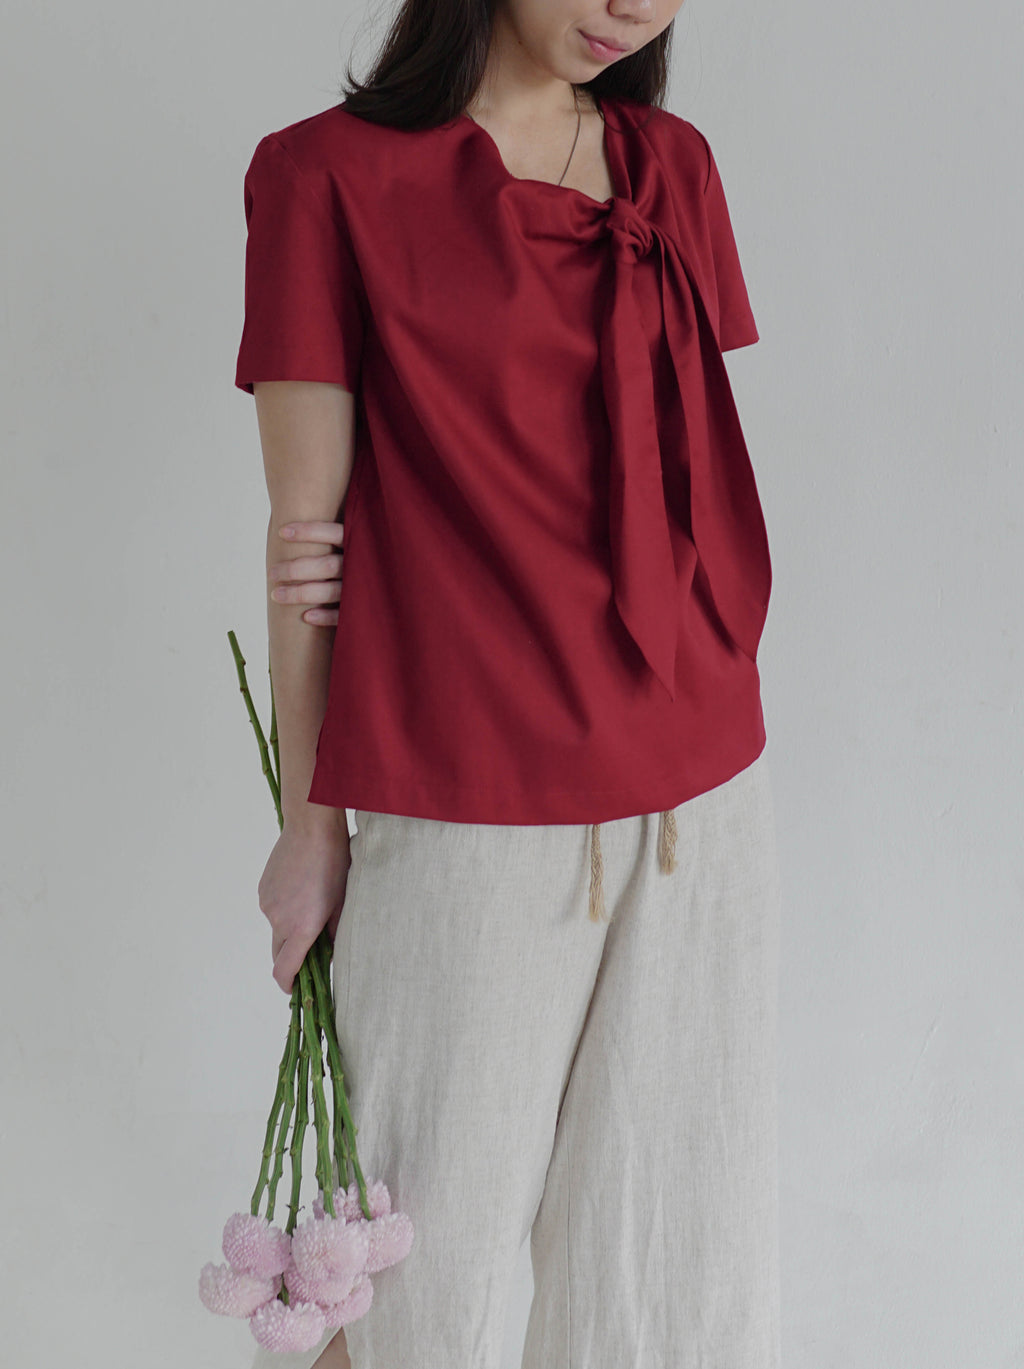 Short Sleeved Top with Tied Neck (Red)